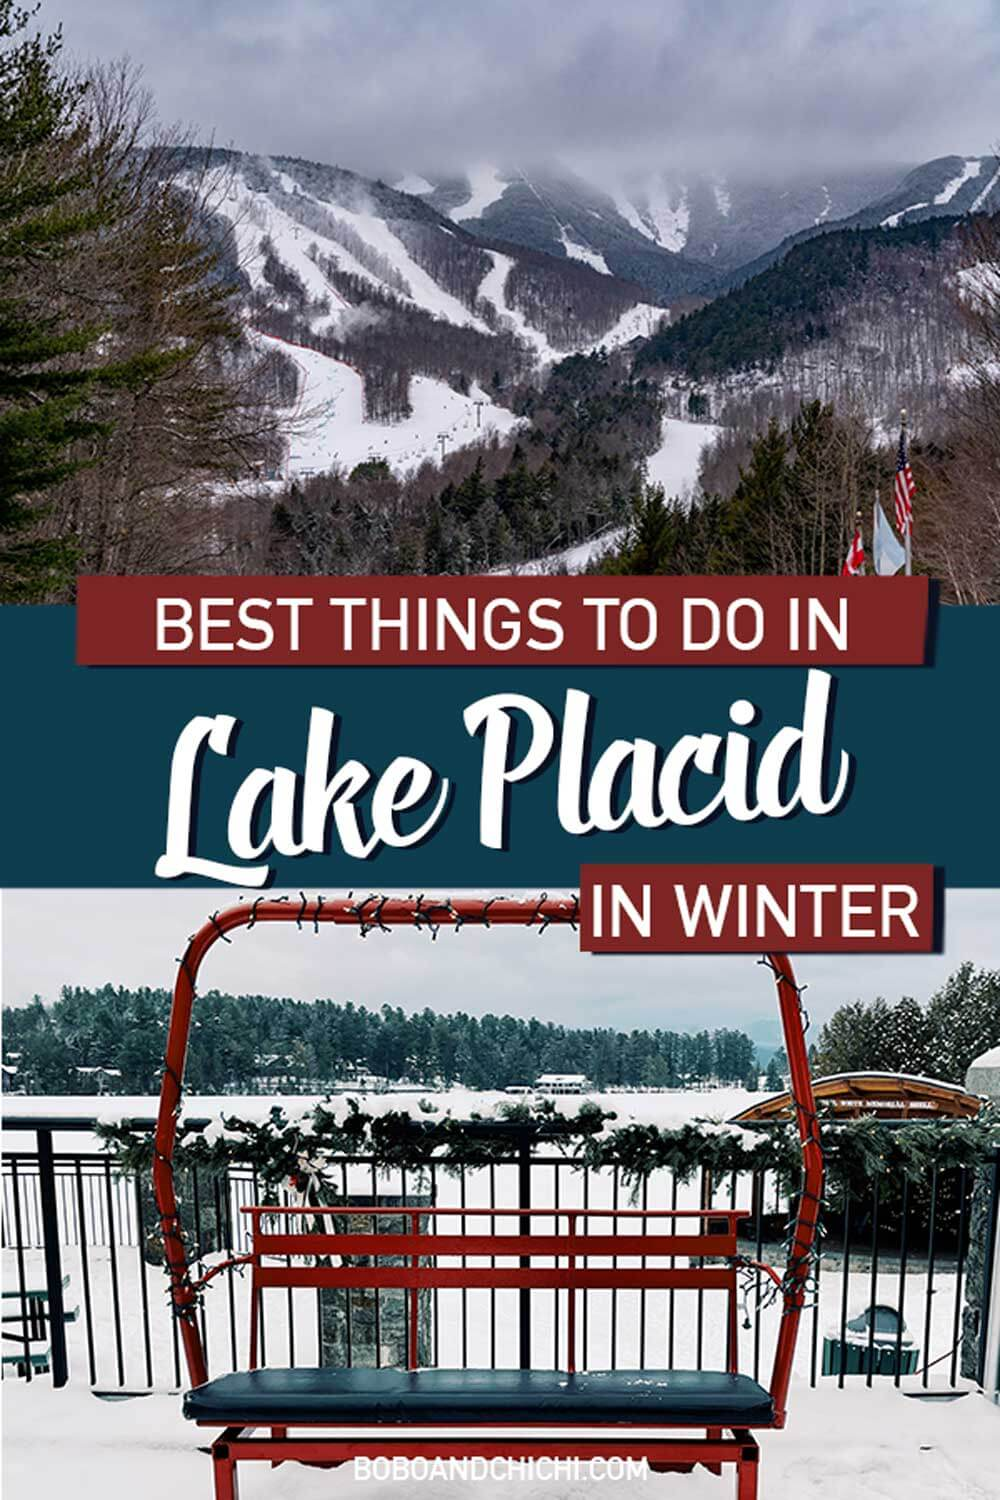 things-to-do-in-lake-placid-in-winter